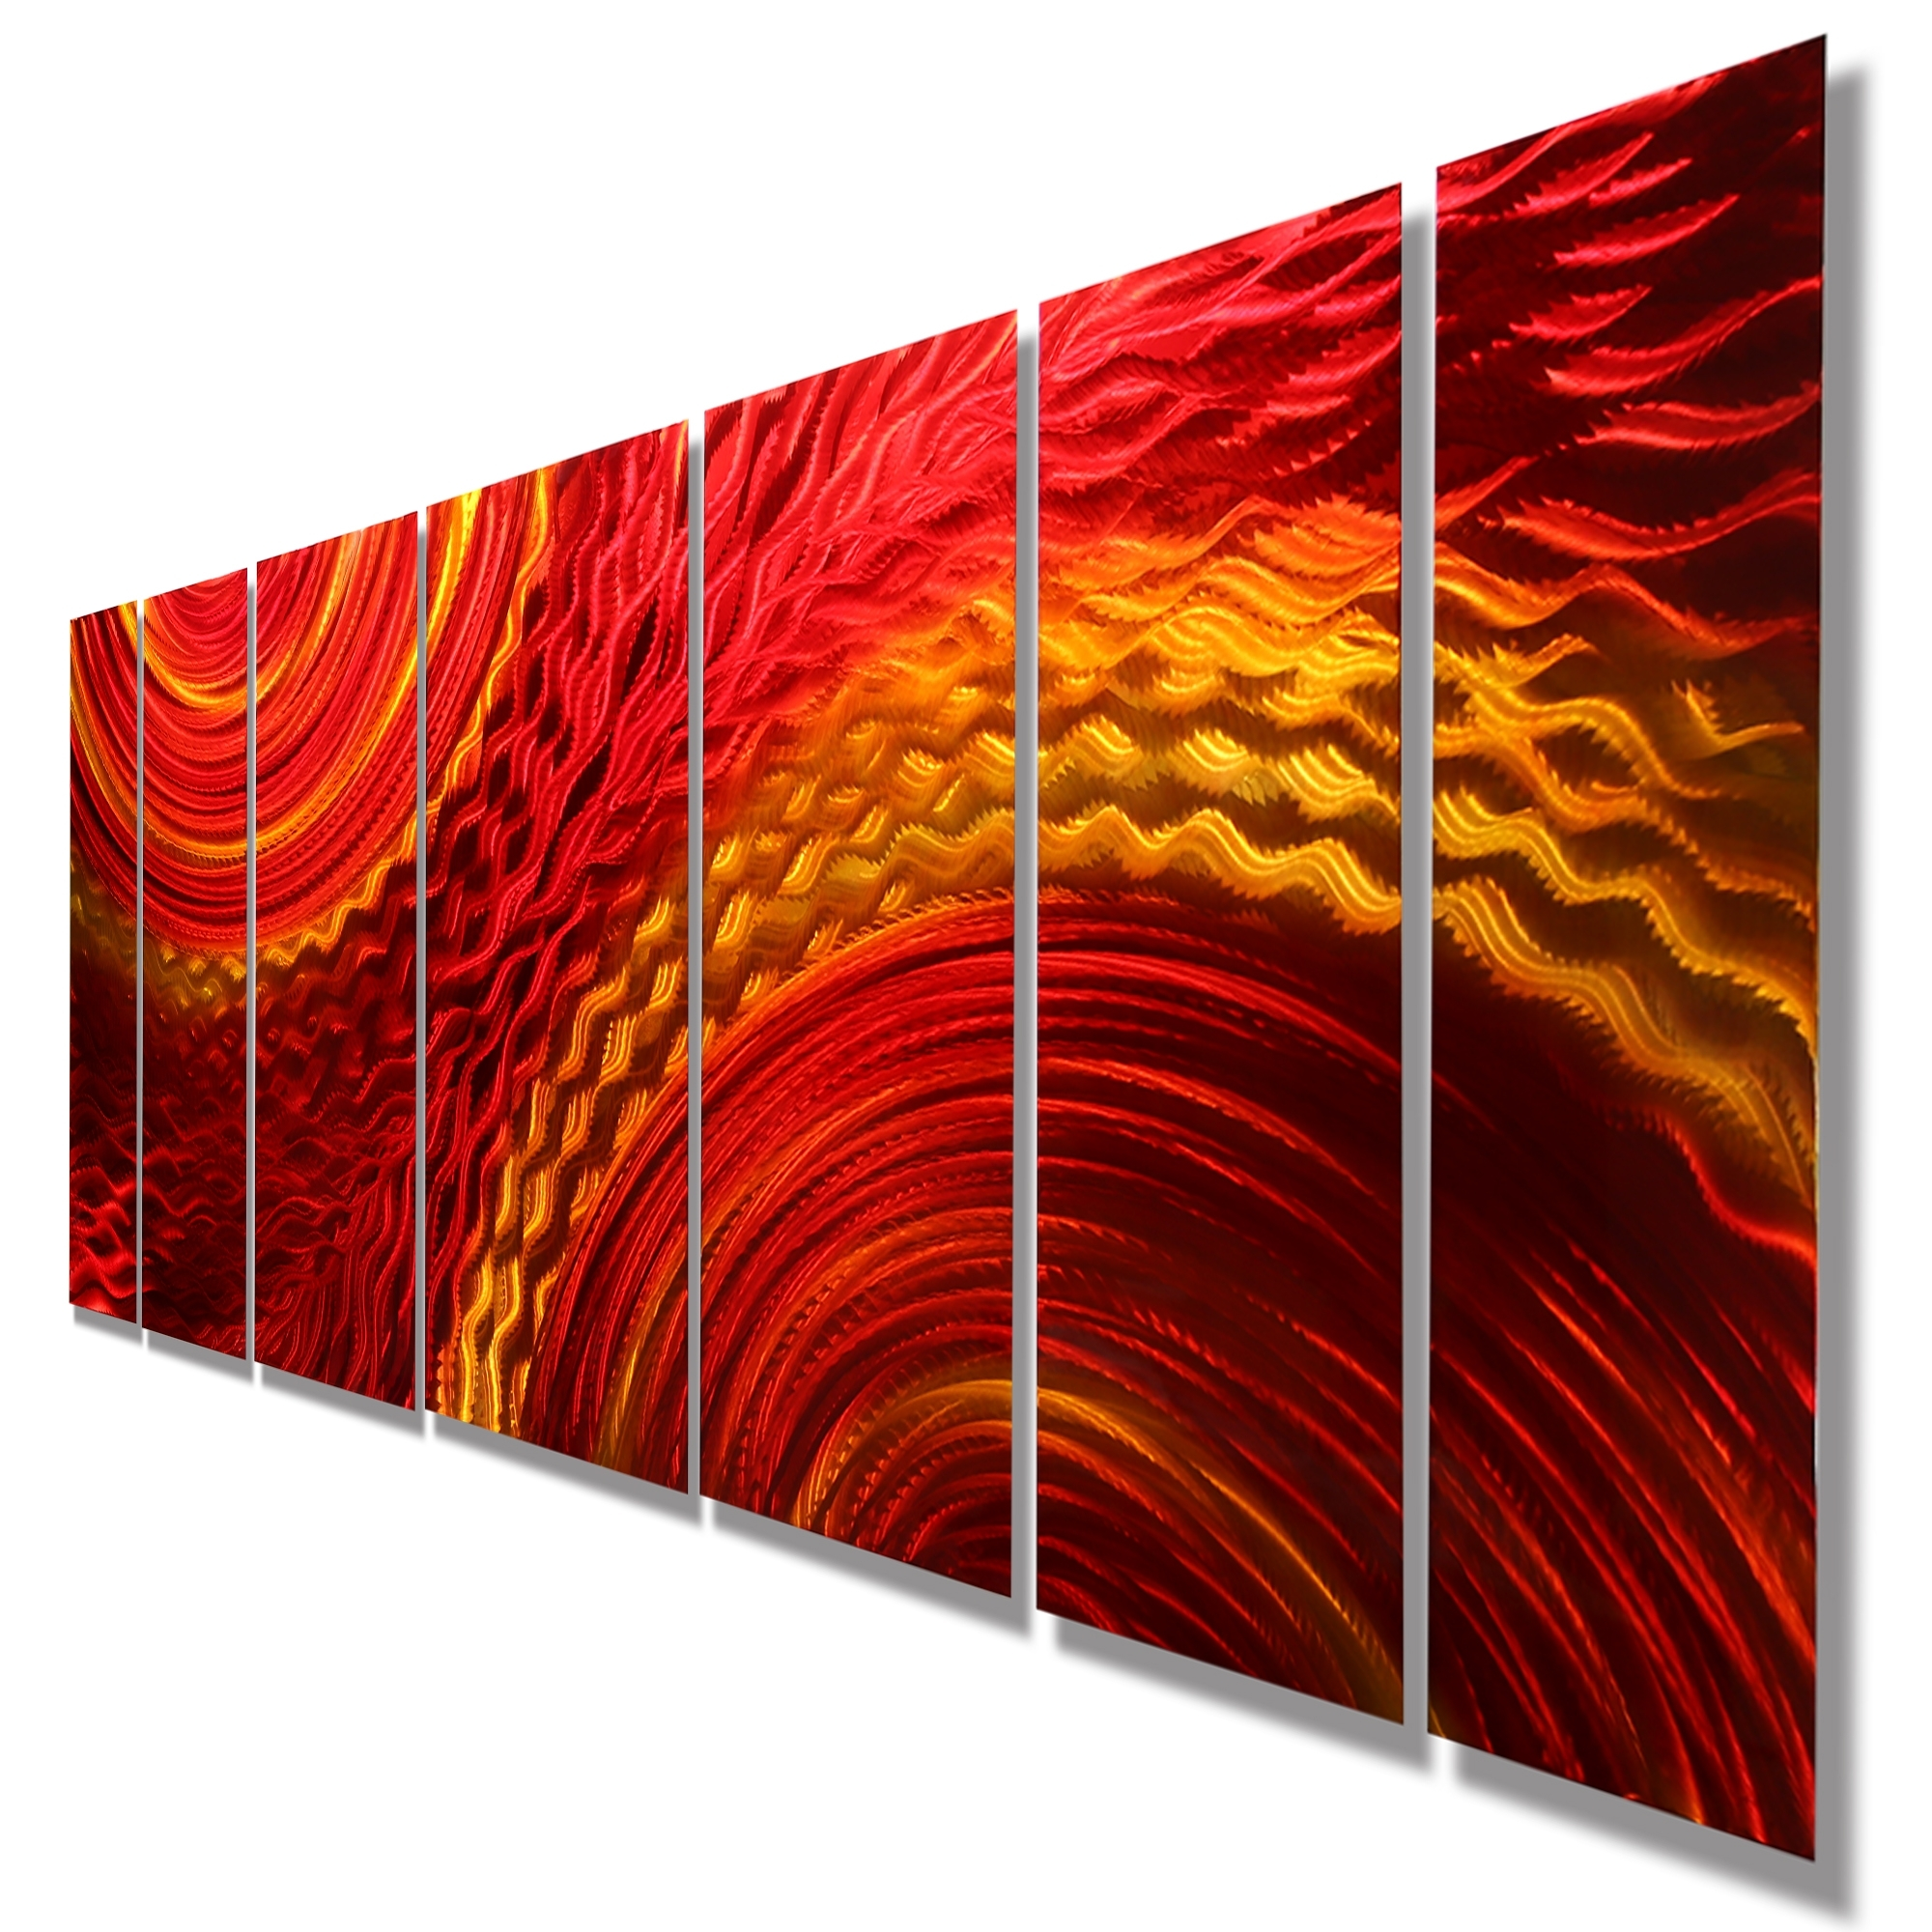 Home Decor: Alluring Abstract Metal Wall Art With Harvest Moods Xl With Regard To Most Recent Large Abstract Wall Art Australia (View 2 of 20)